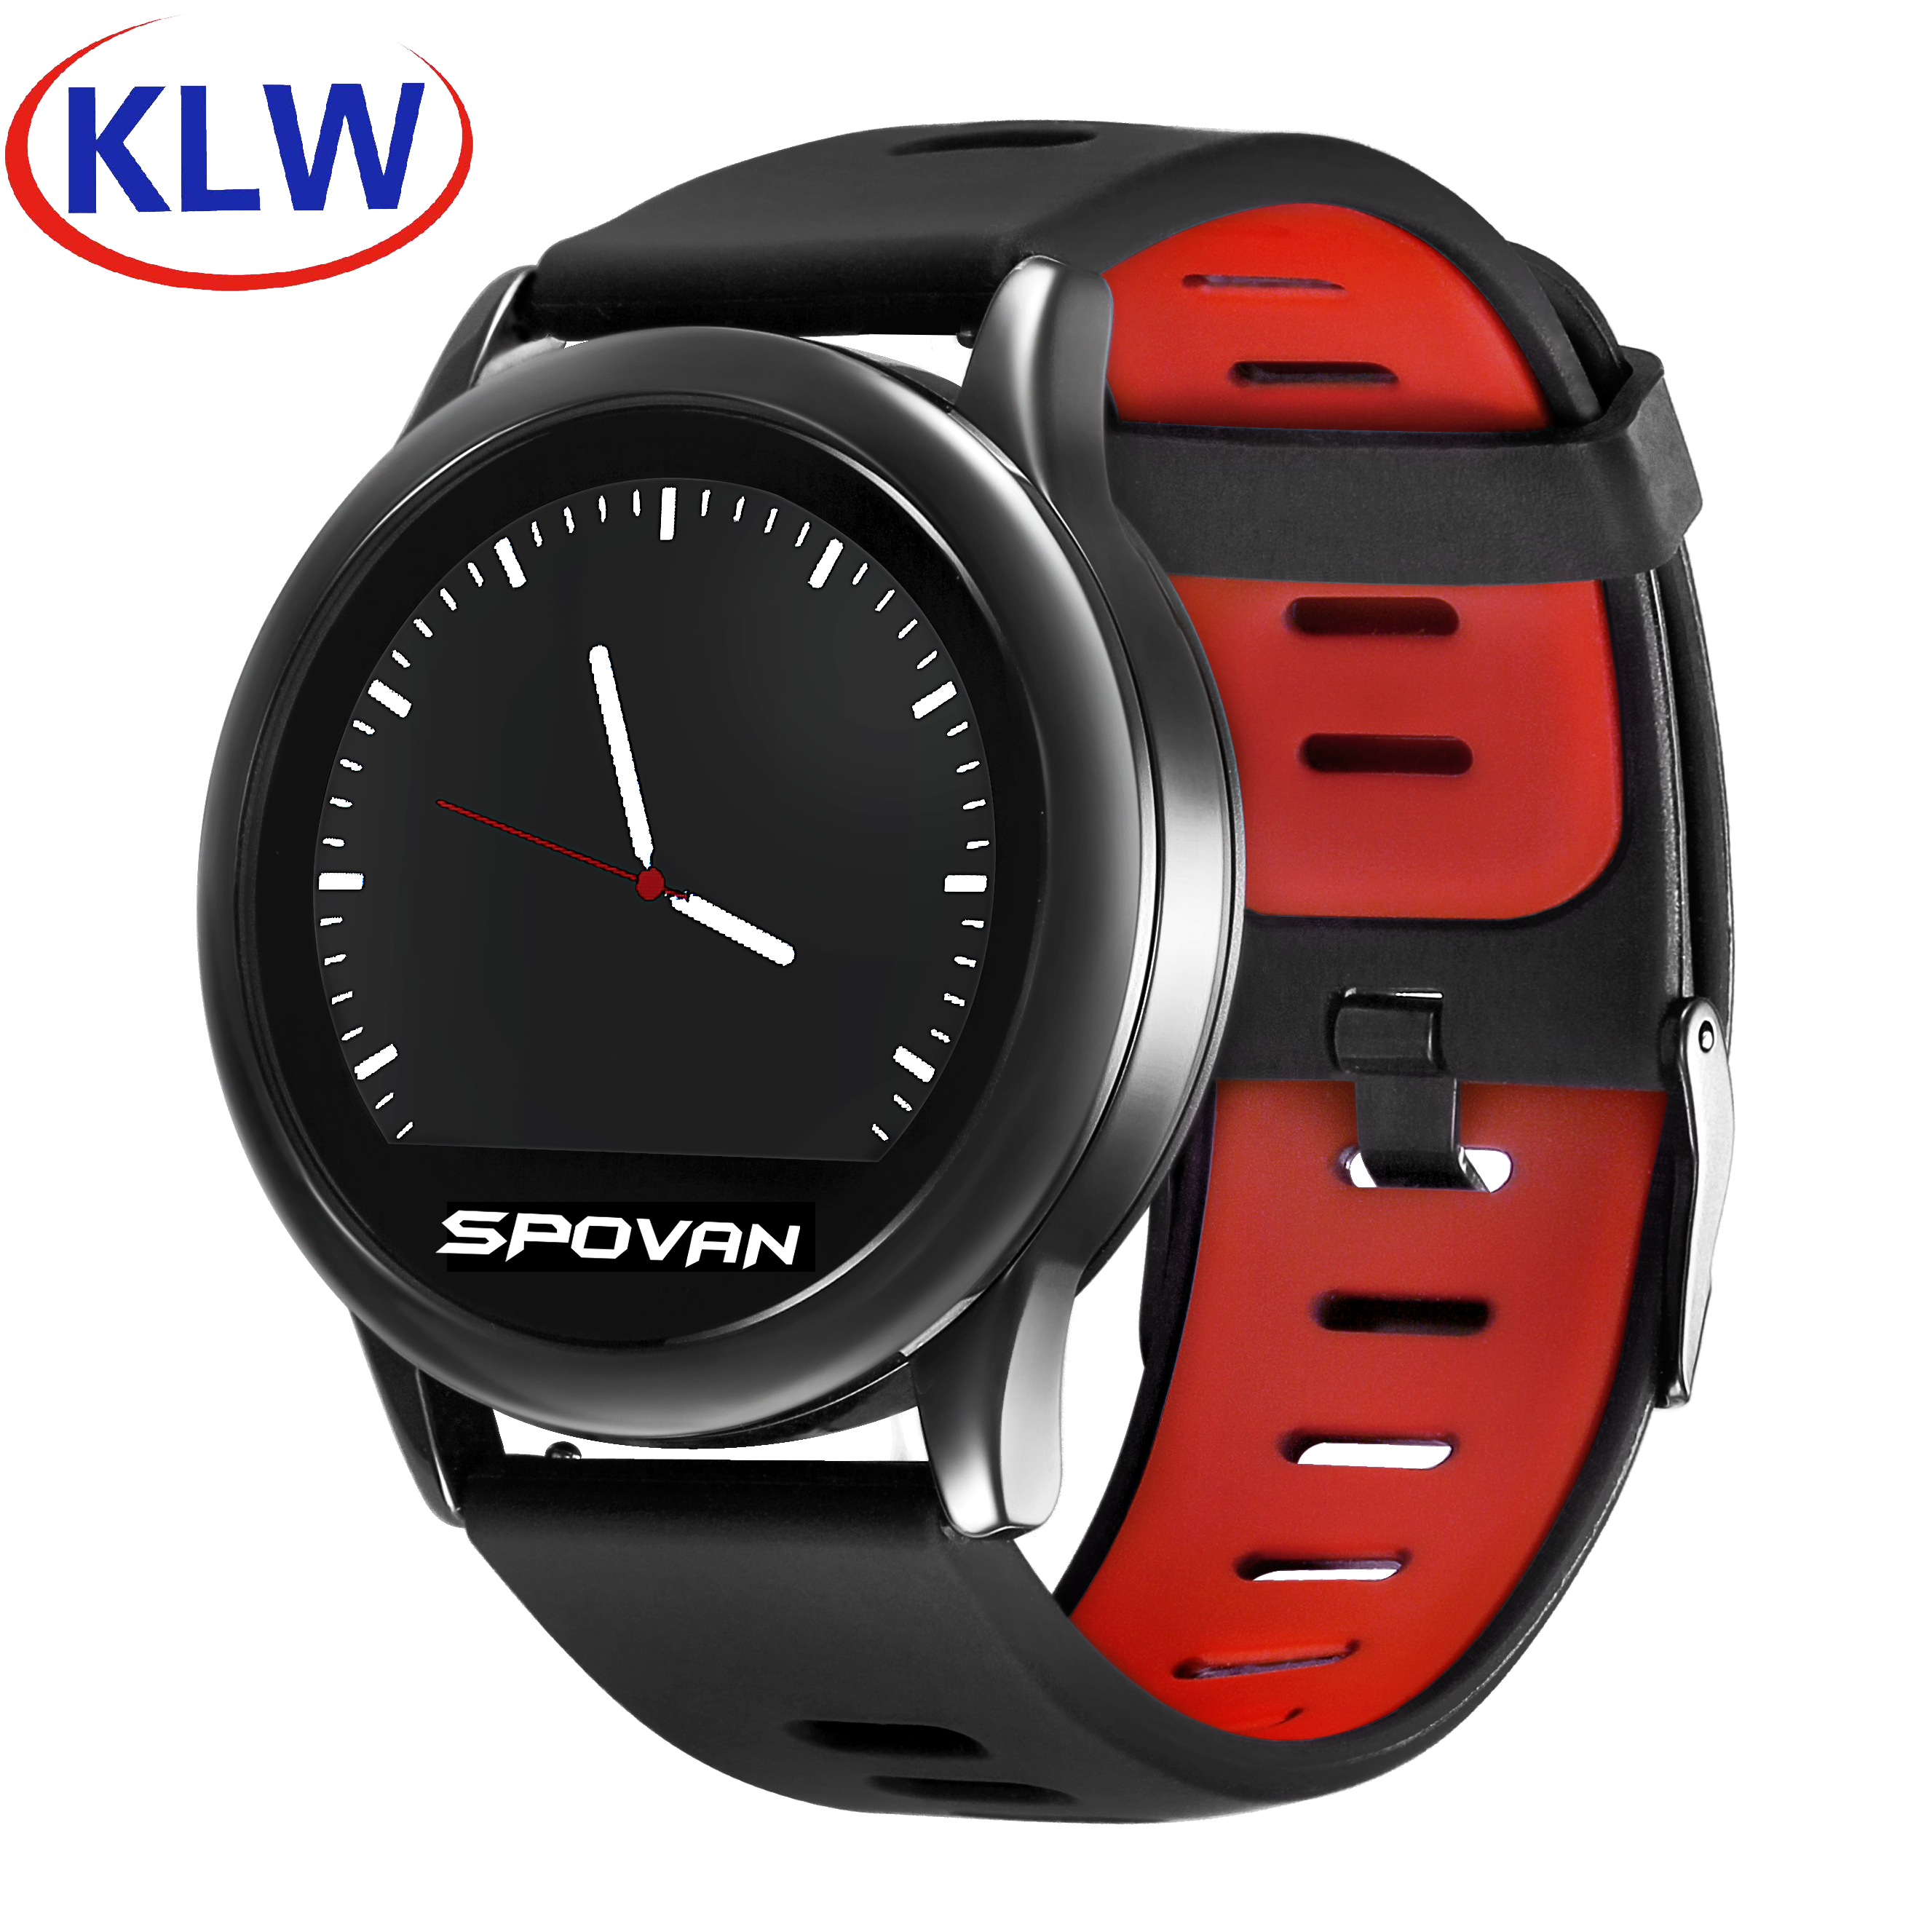 IP67 waterproof dual cpus sports Smart watch SW001 smart step counter Android Bluetooth IOS long standby sports watch image